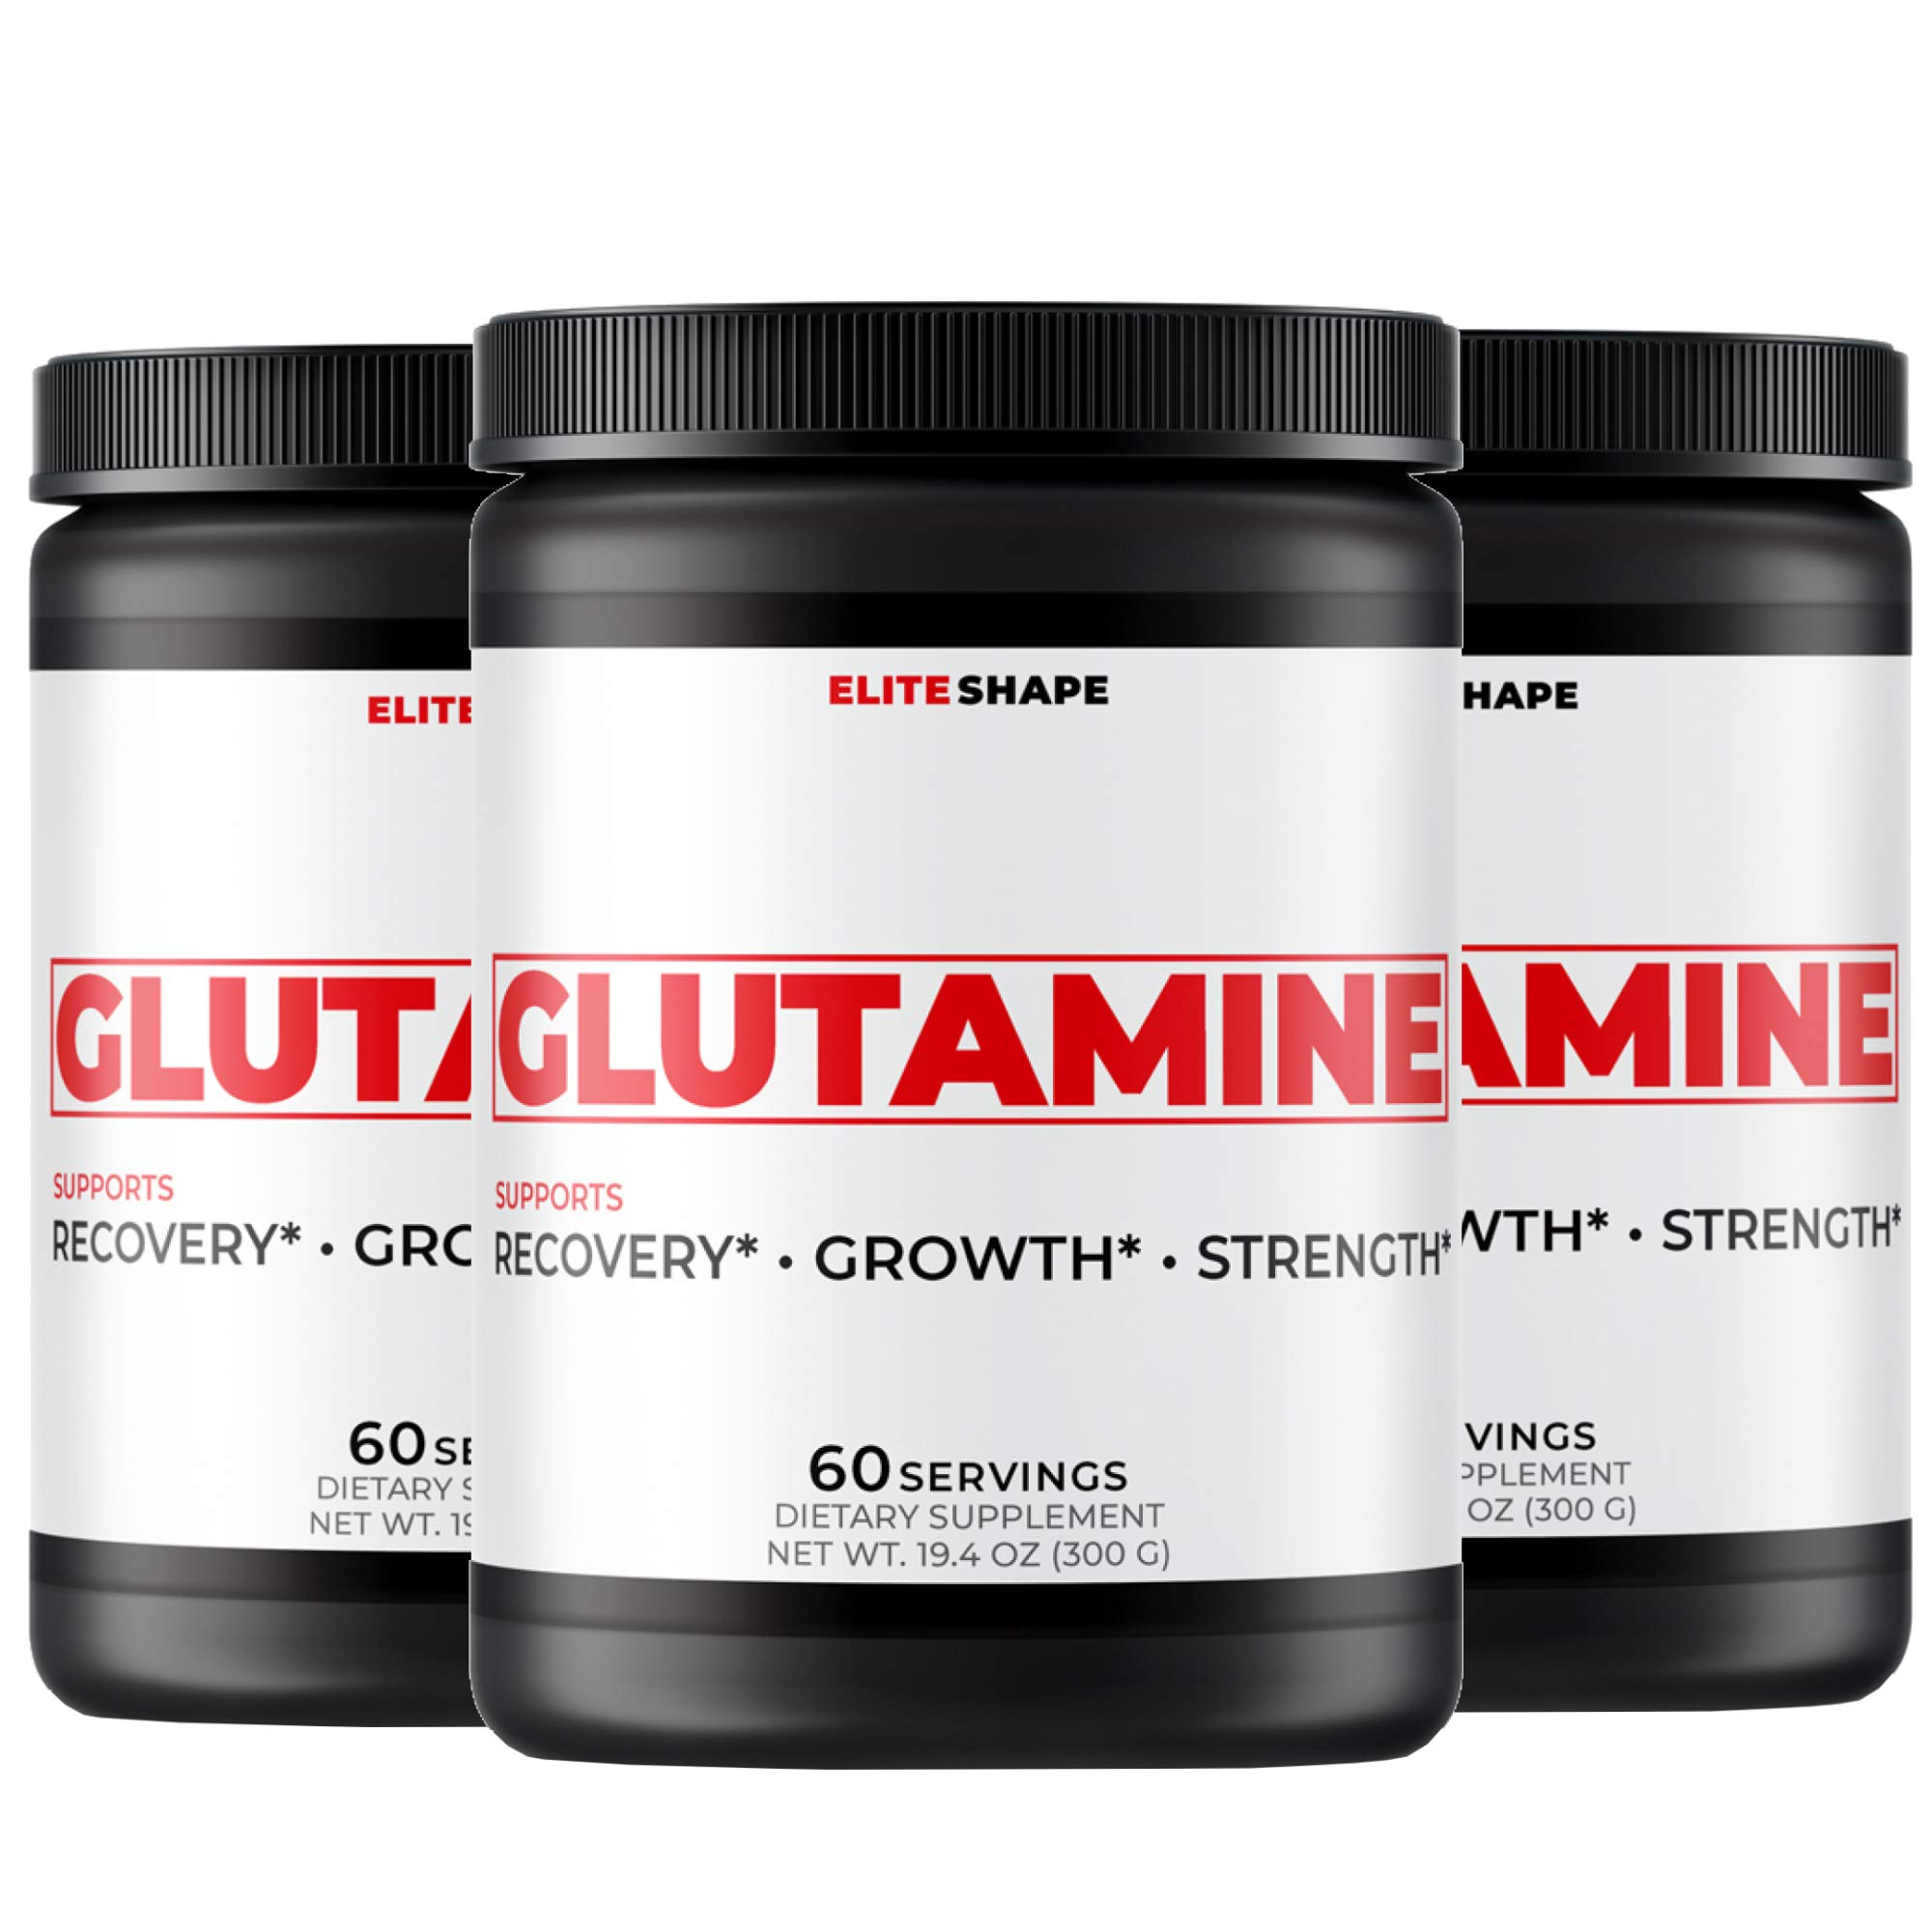 Glutamine by Elite Shape | Sports and Fitness Dietary Supplement | 100% Pure L-Glutamine for Muscle Recovery and Strength | 60 Servings (3)